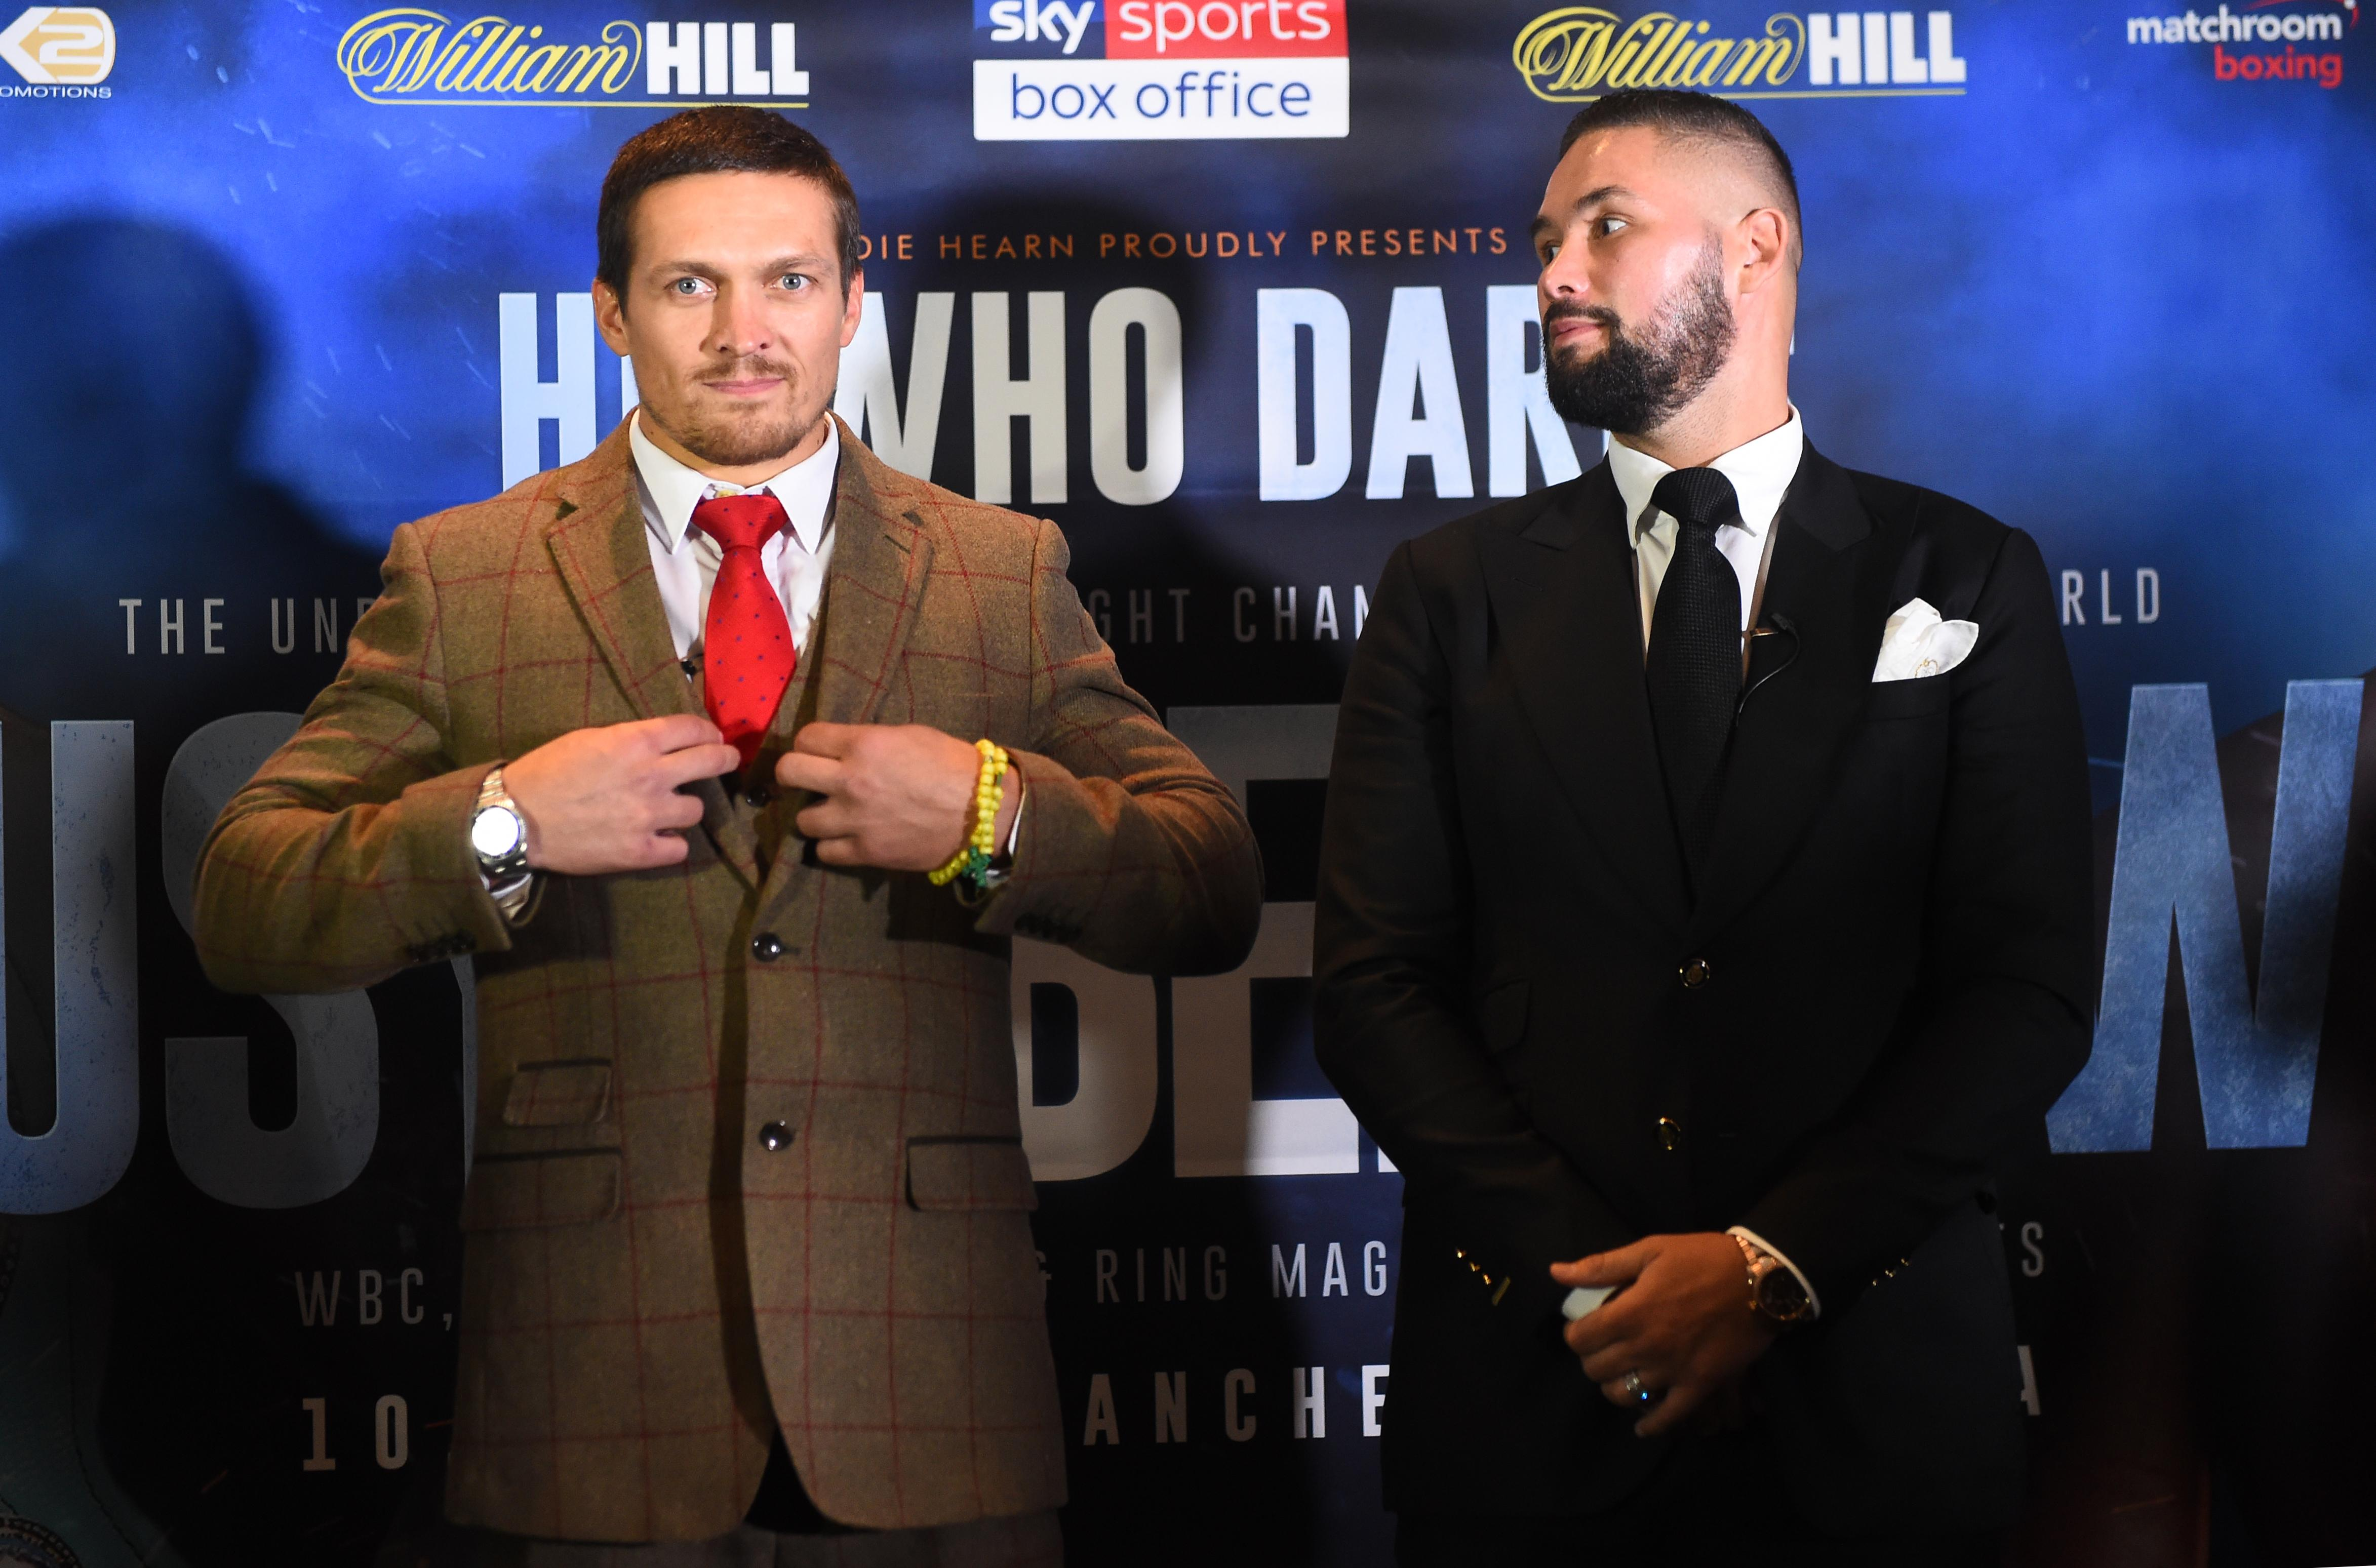 Usyk, left, goes head-to-head with Tony Bellew on November 10 in Manchester